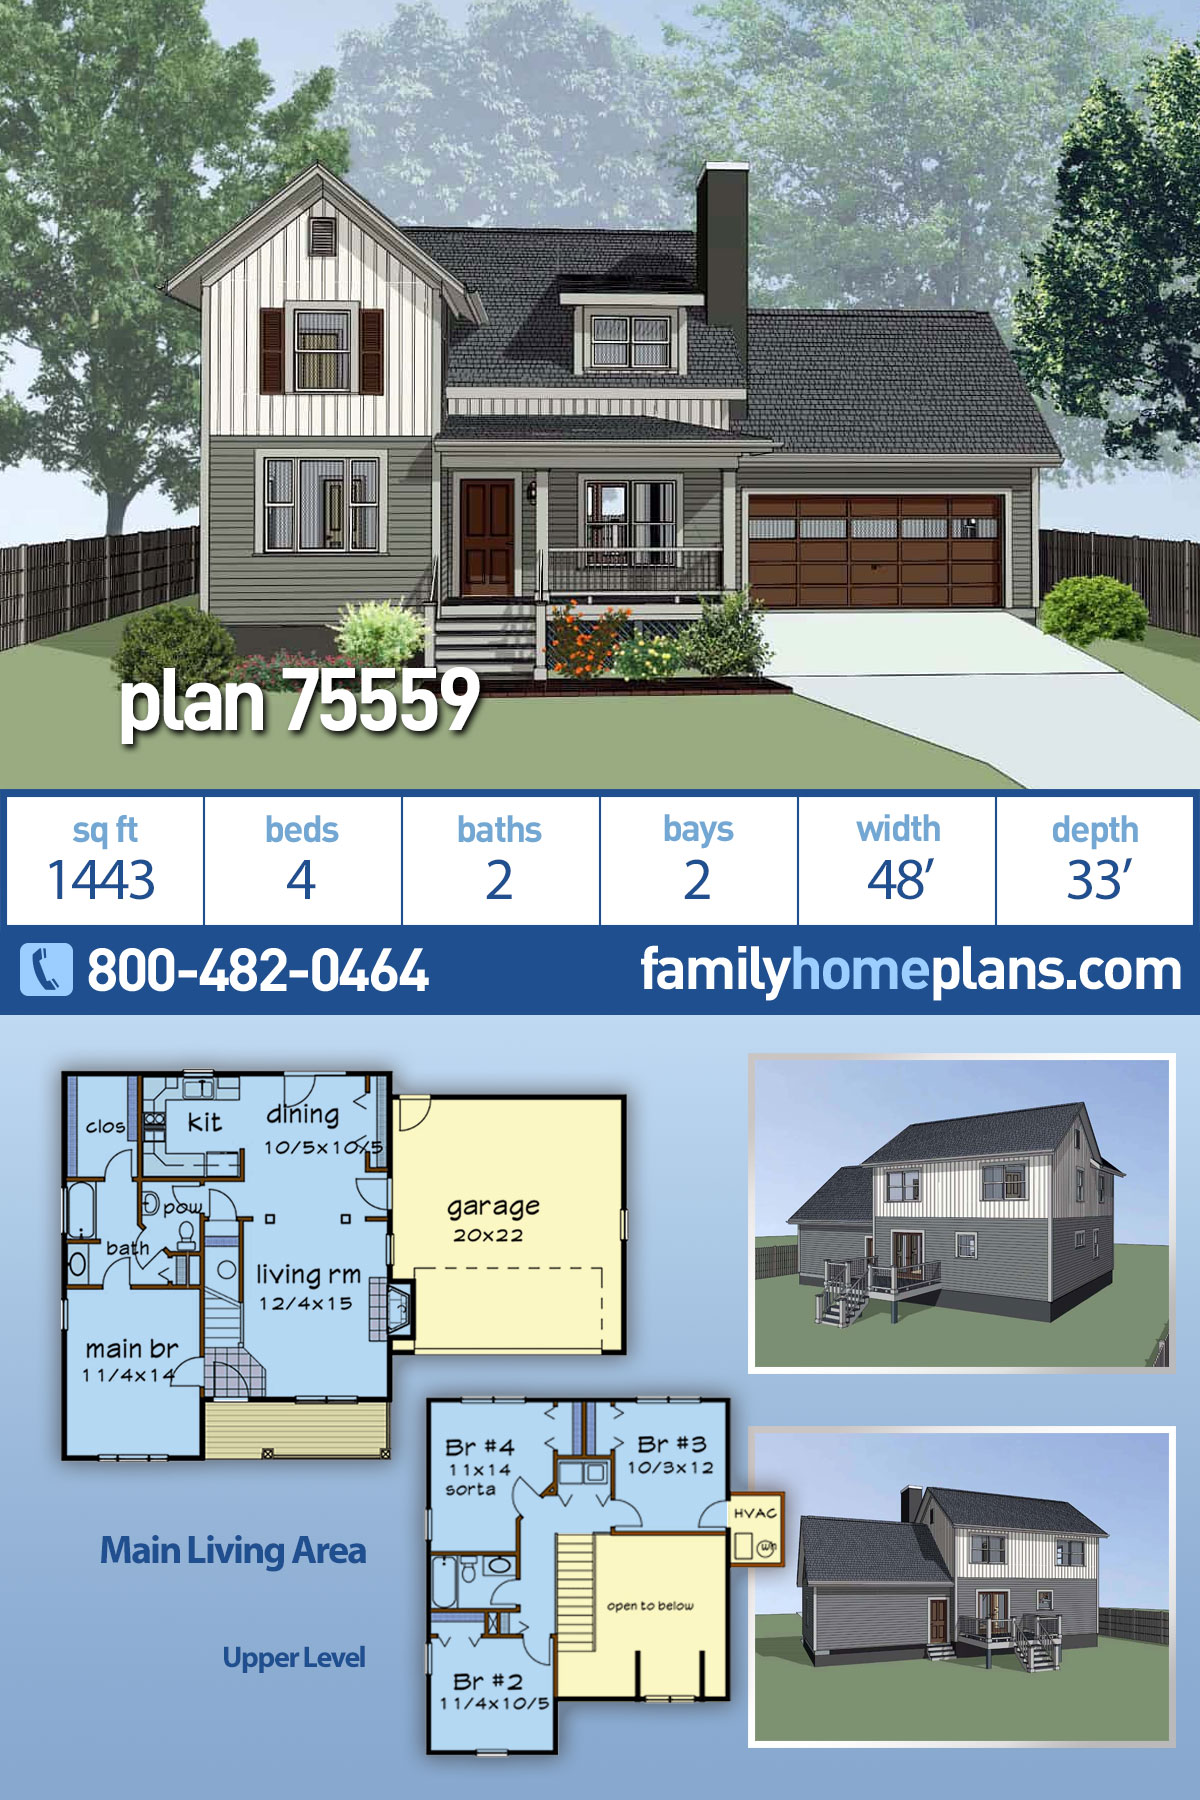 Bungalow, Colonial, Traditional House Plan 75559 with 4 Beds, 2 Baths, 2 Car Garage